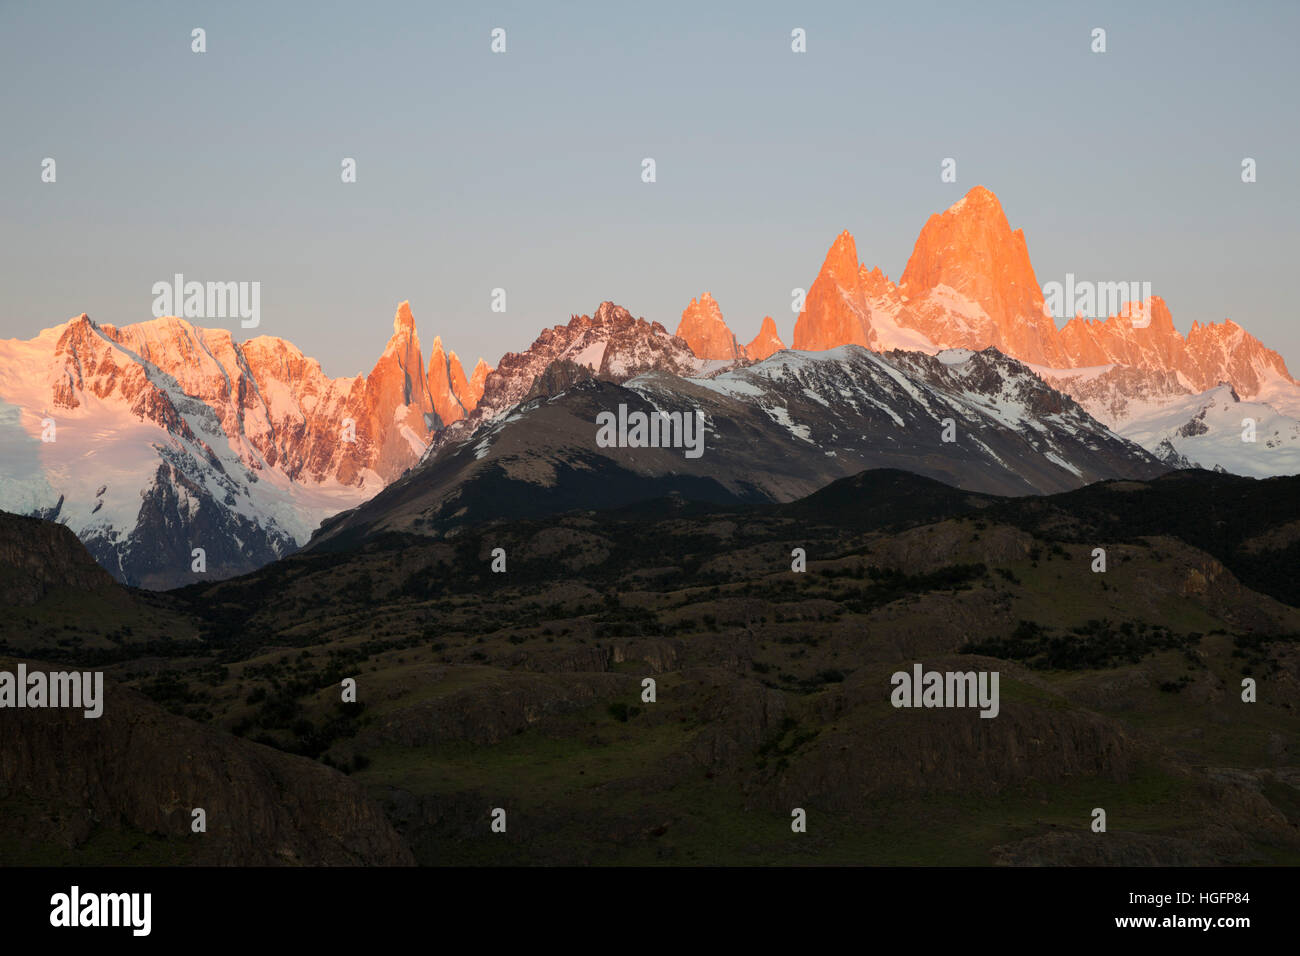 View of Mount Fitz Roy and Cerro Torre at sunrise from Mirador de los Condores, El Chalten, Patagonia, Argentina, - Stock Image